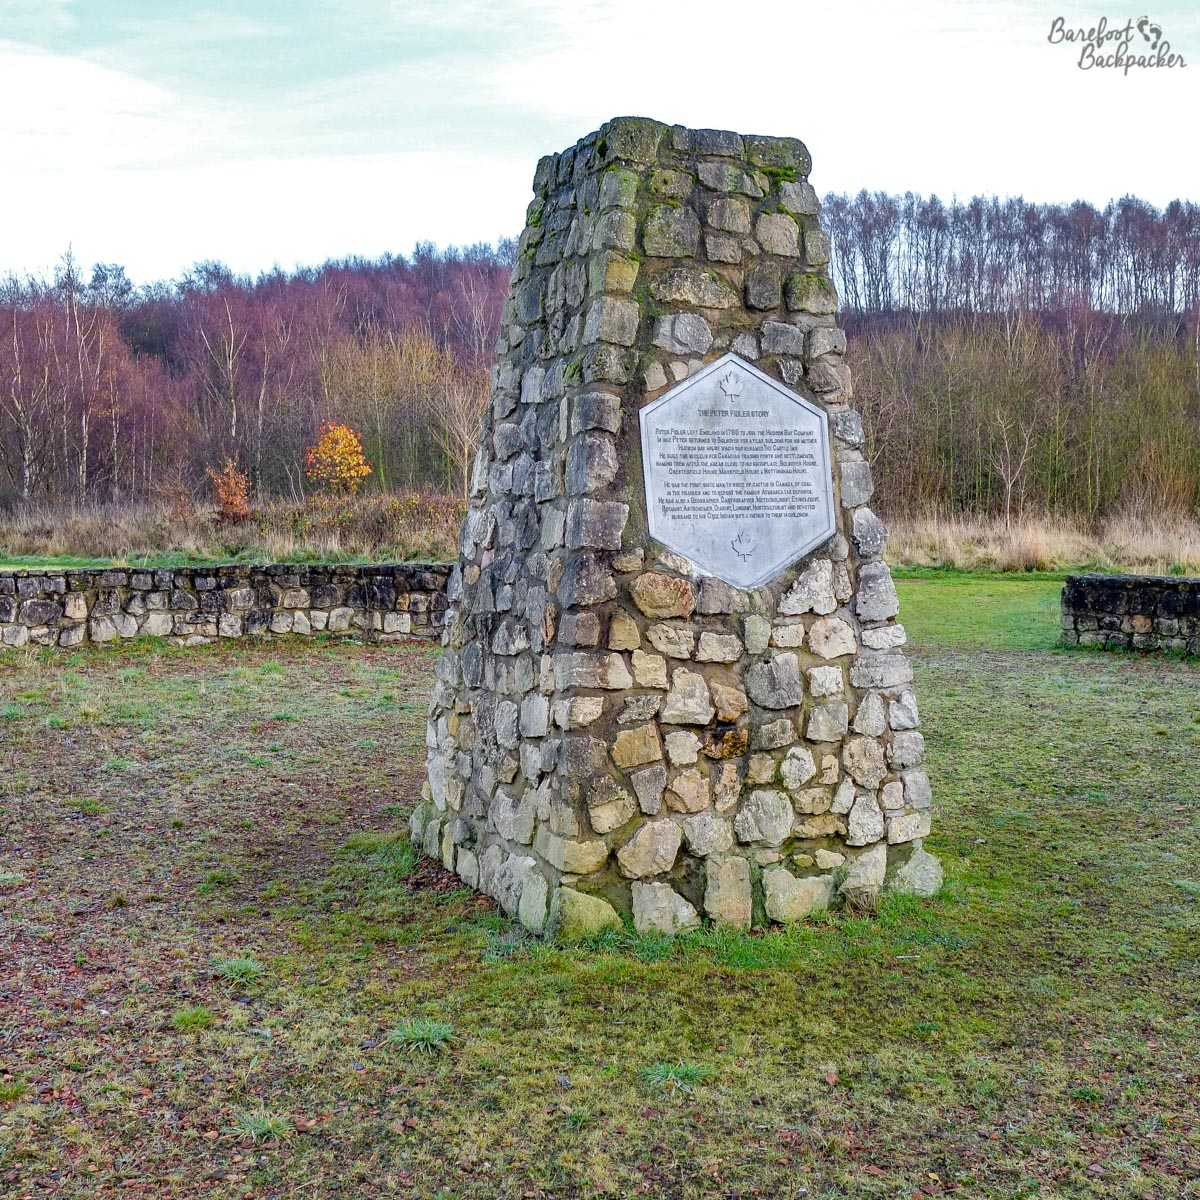 Cairn memorial to Peter Fidler, Bolsover